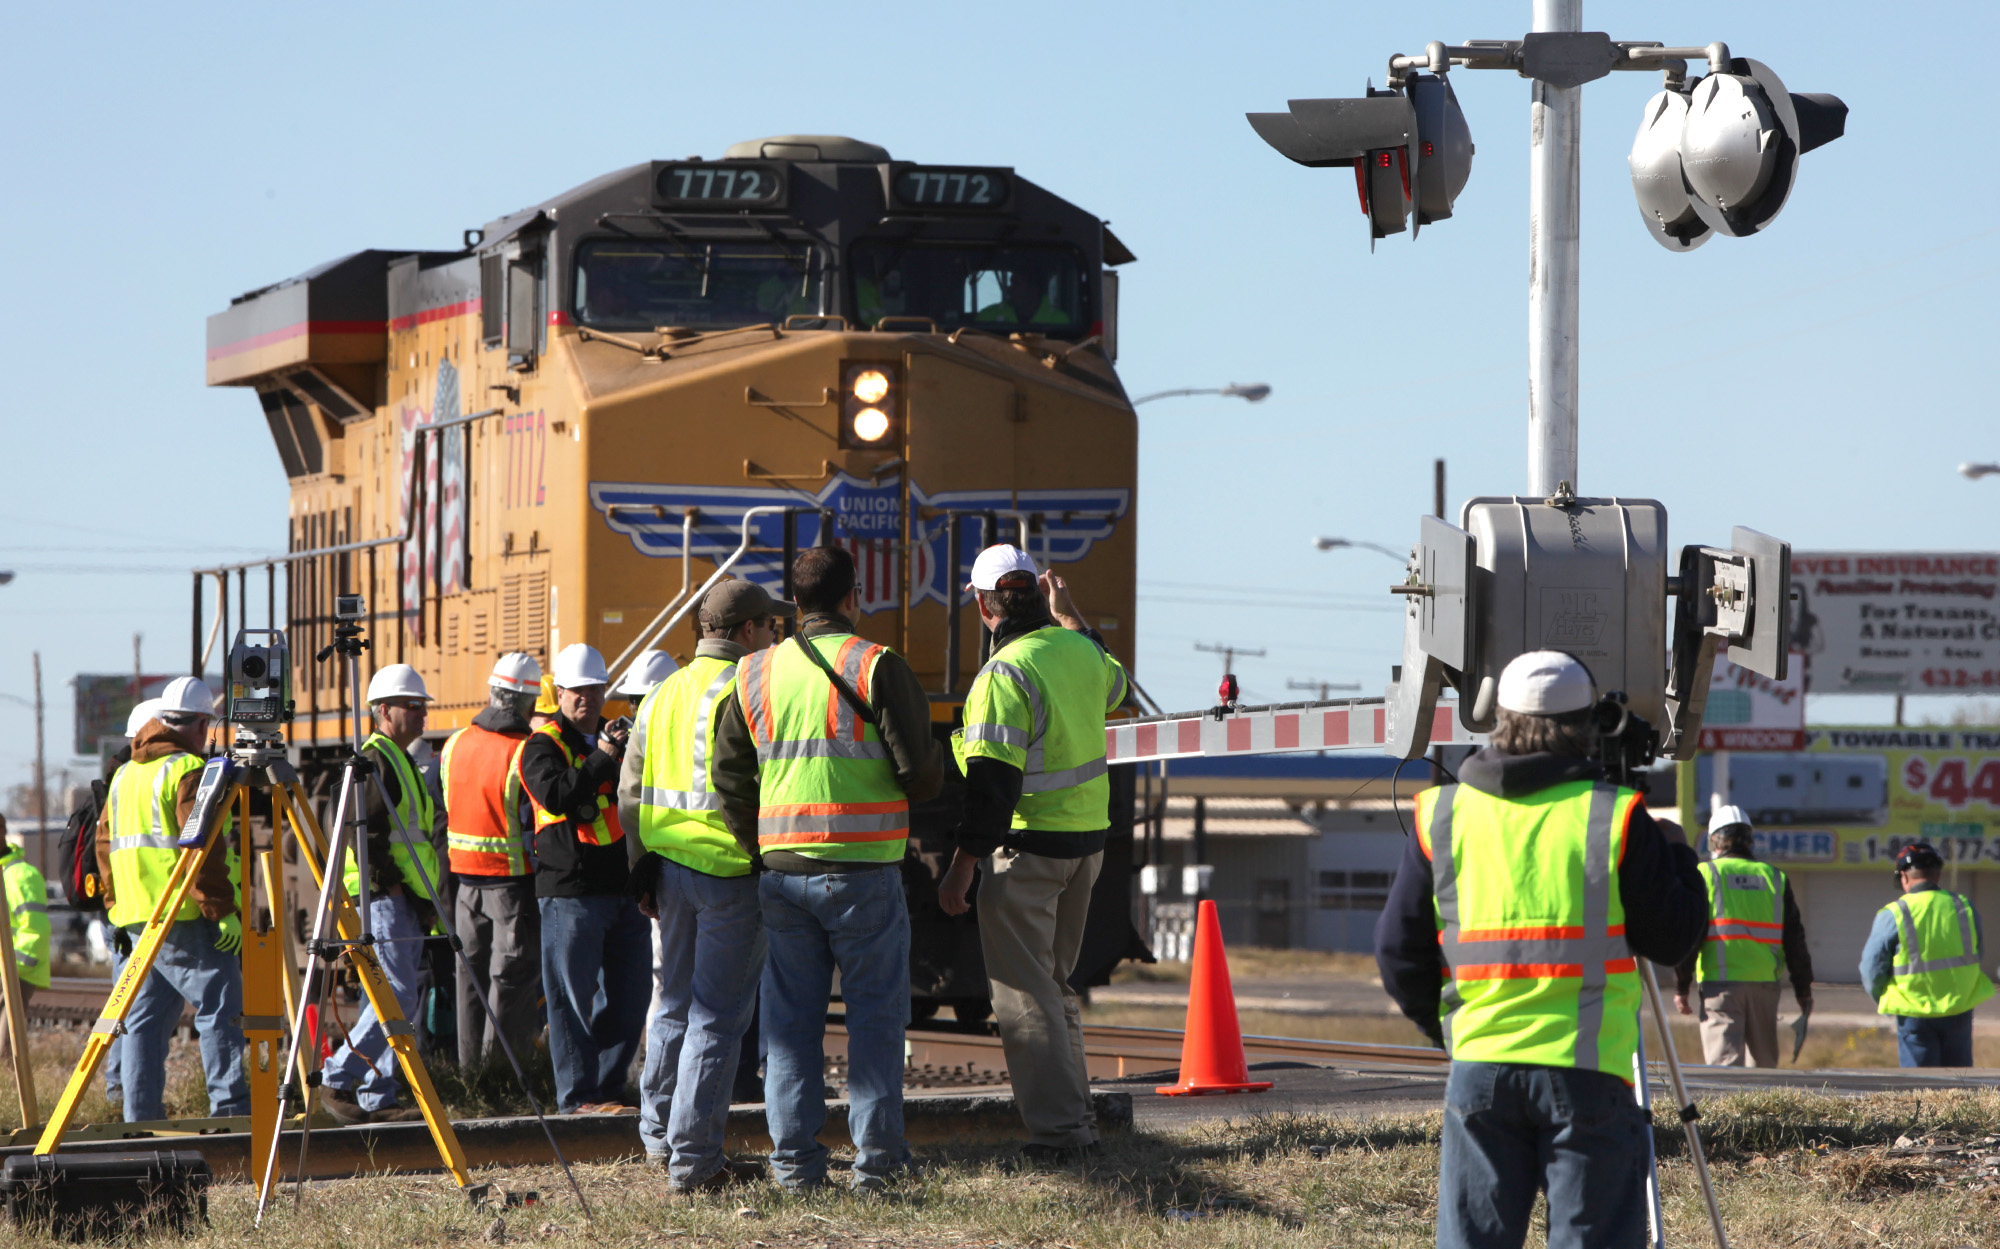 Union Pacific to work on system at site of fatal Midland crash - San